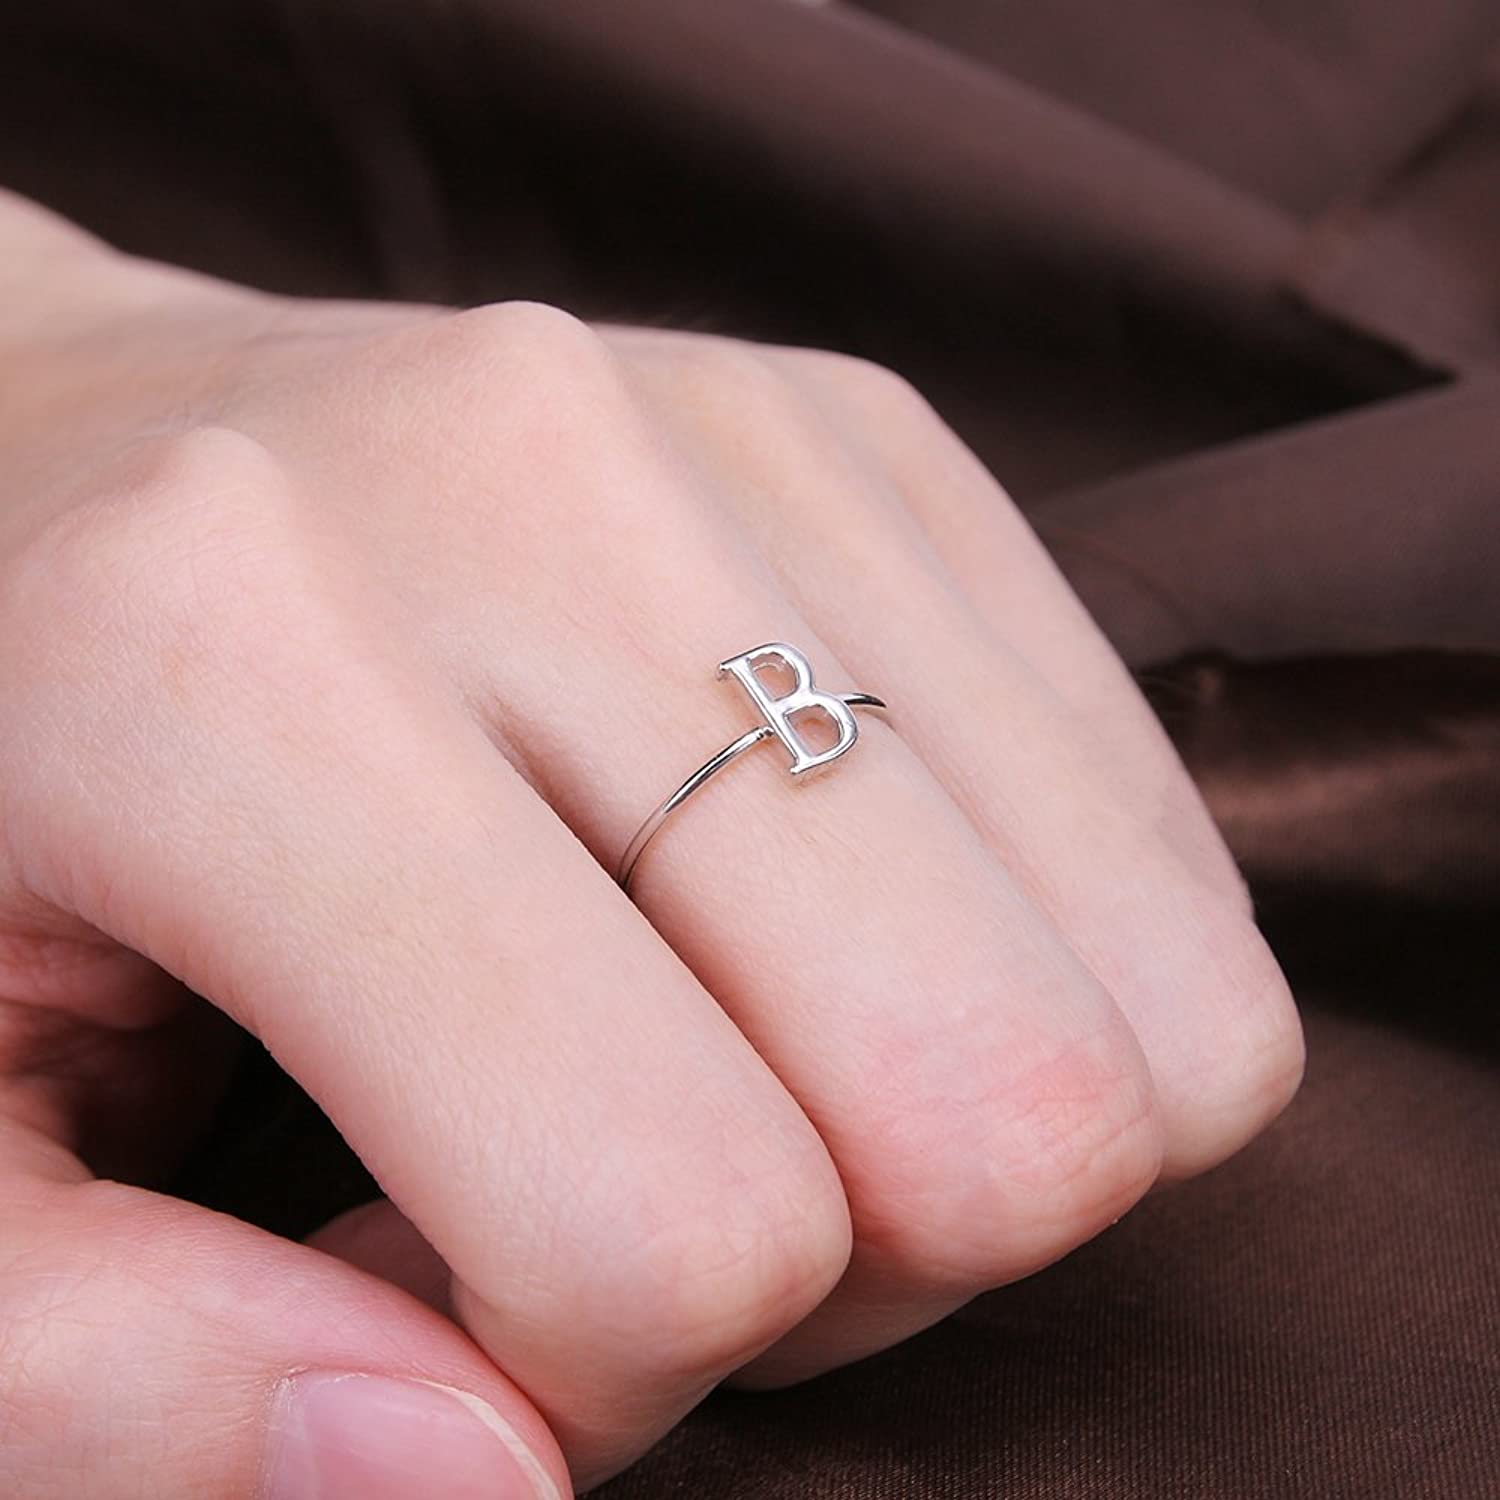 Amazon.com: AoedeJ Initial Rings Capital Letter B Ring 925 Sterling ...